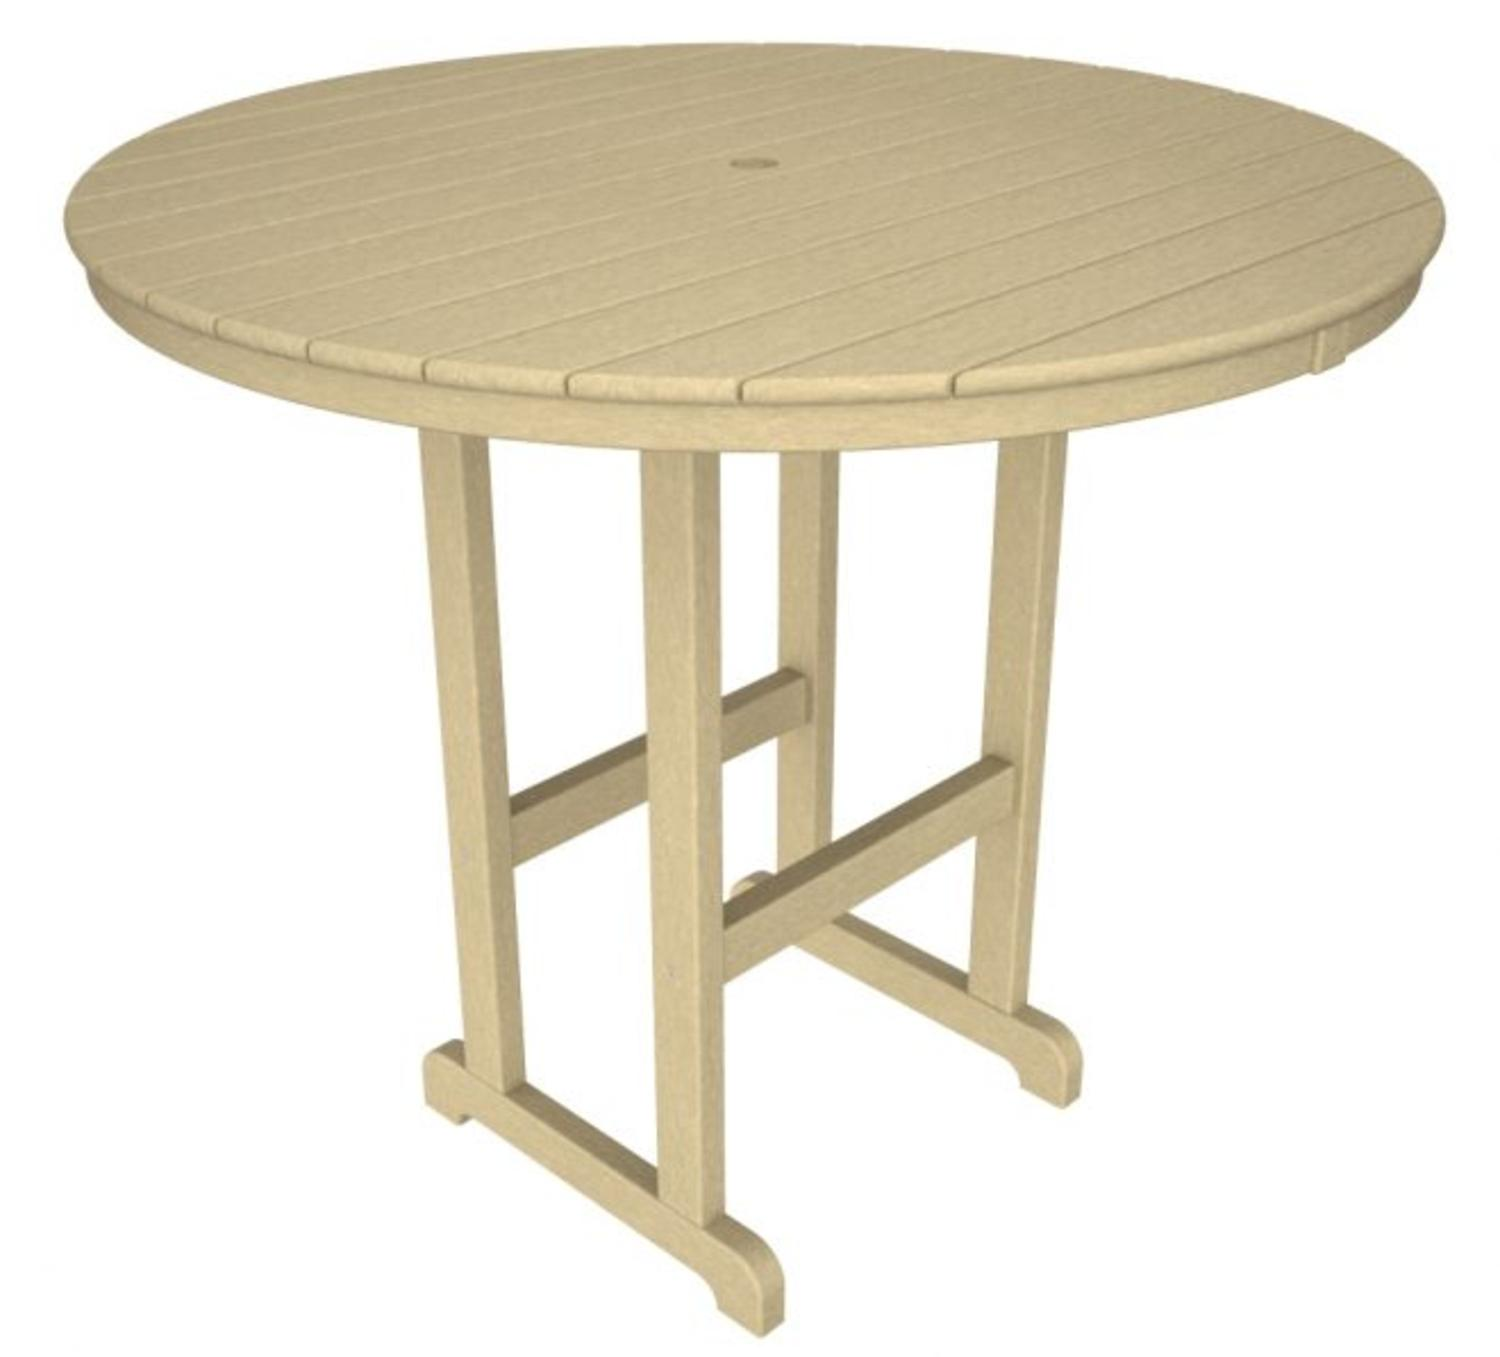 "48"" Recycled Earth-Friendly Outdoor Patio Round Pub Table Khaki by Eco-Friendly Furnishings"